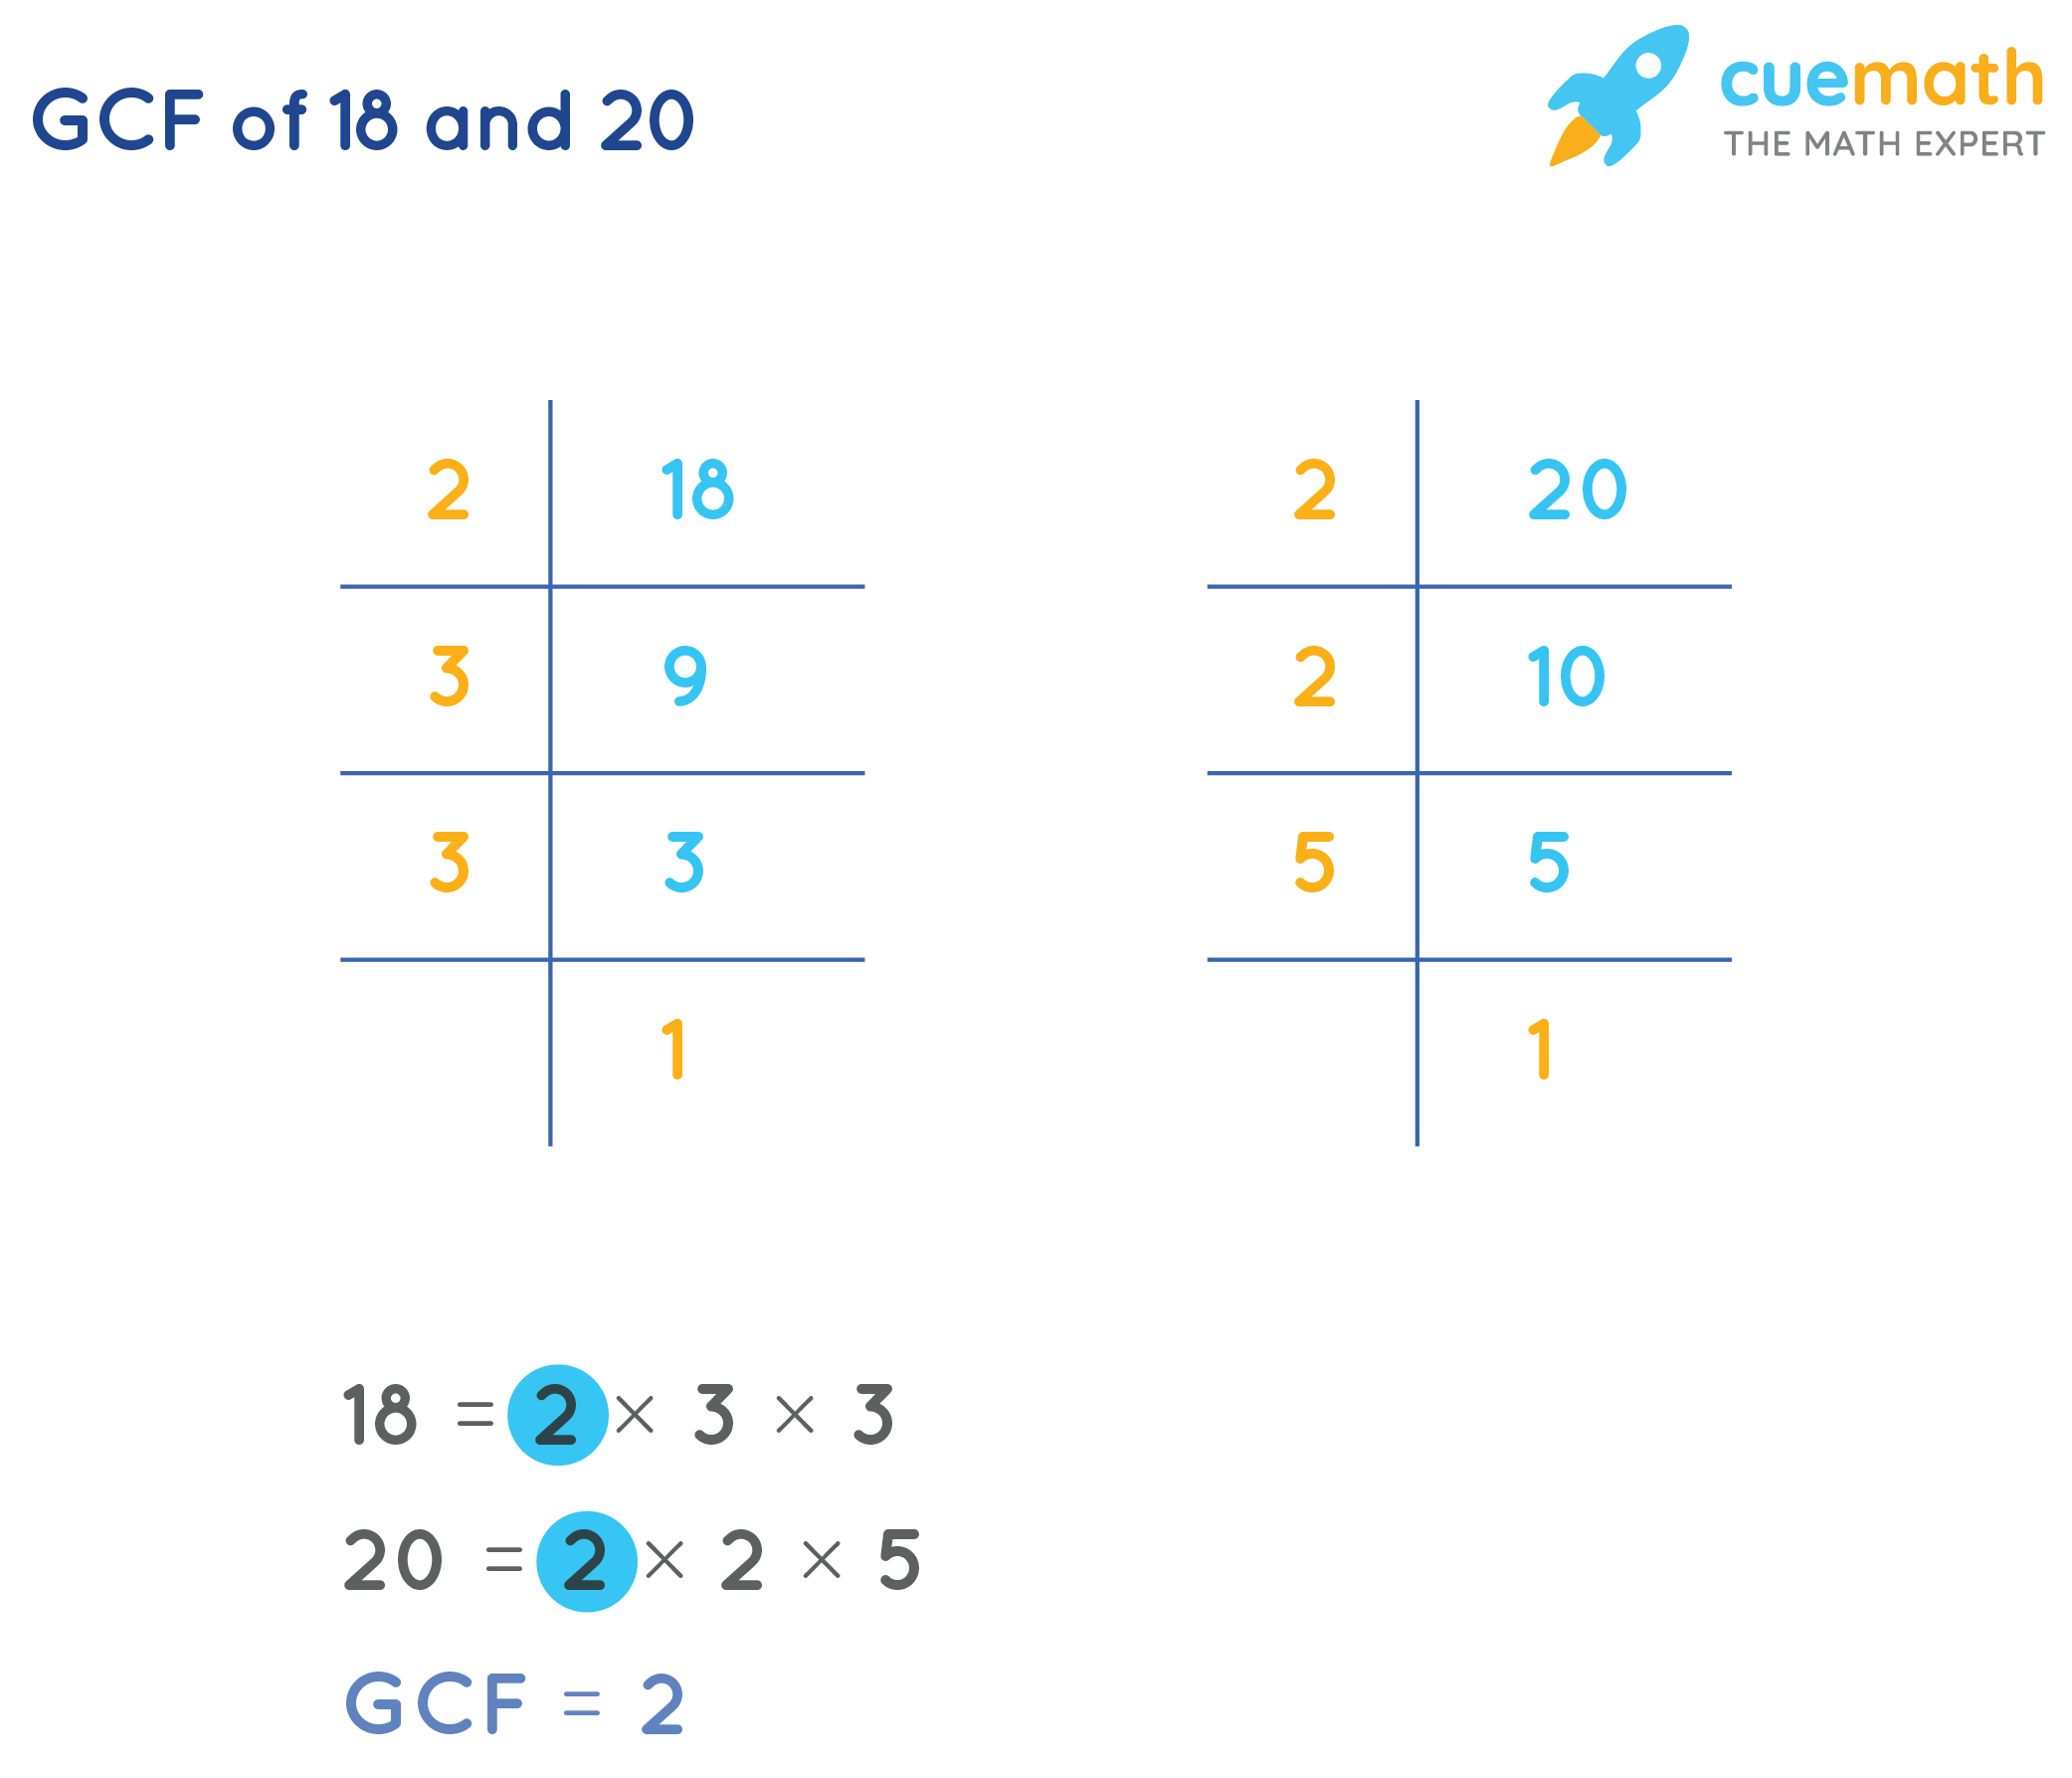 GCF of 18and 20by Prime Factorization